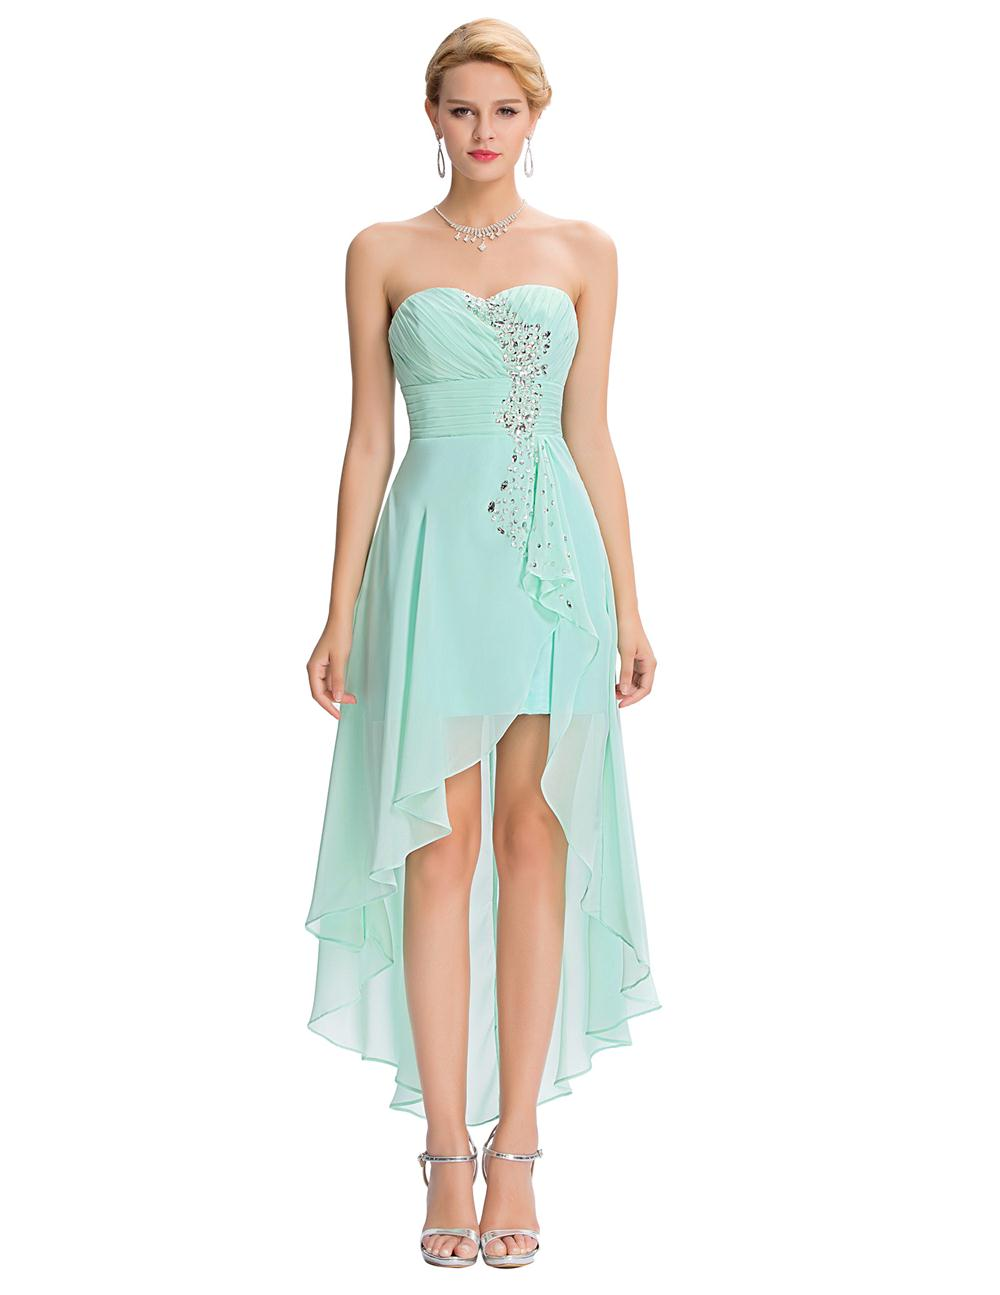 Turquise Prom Dresses Short Front Long in Back In_Prom Dresses_dressesss